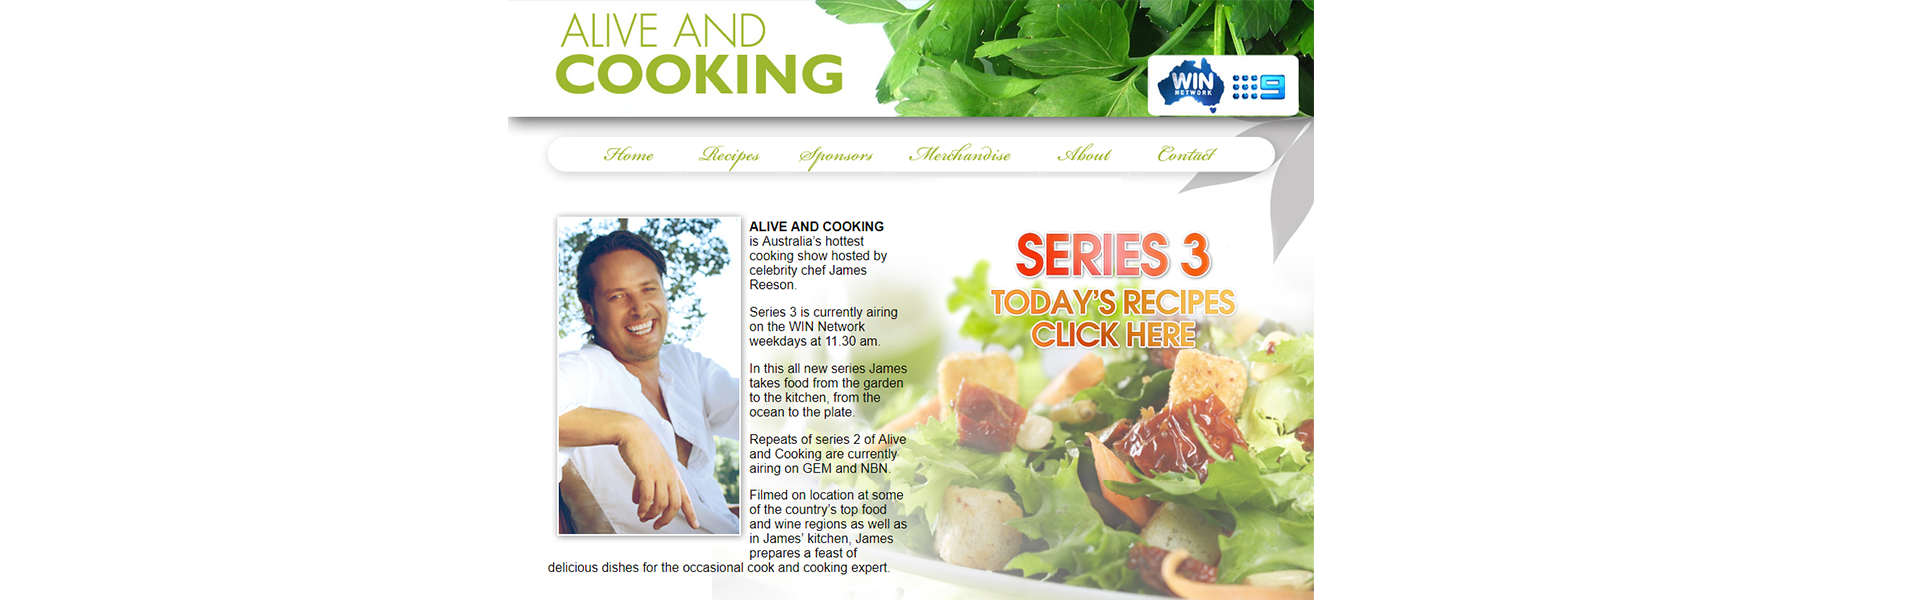 Web Design Alive and Cooking